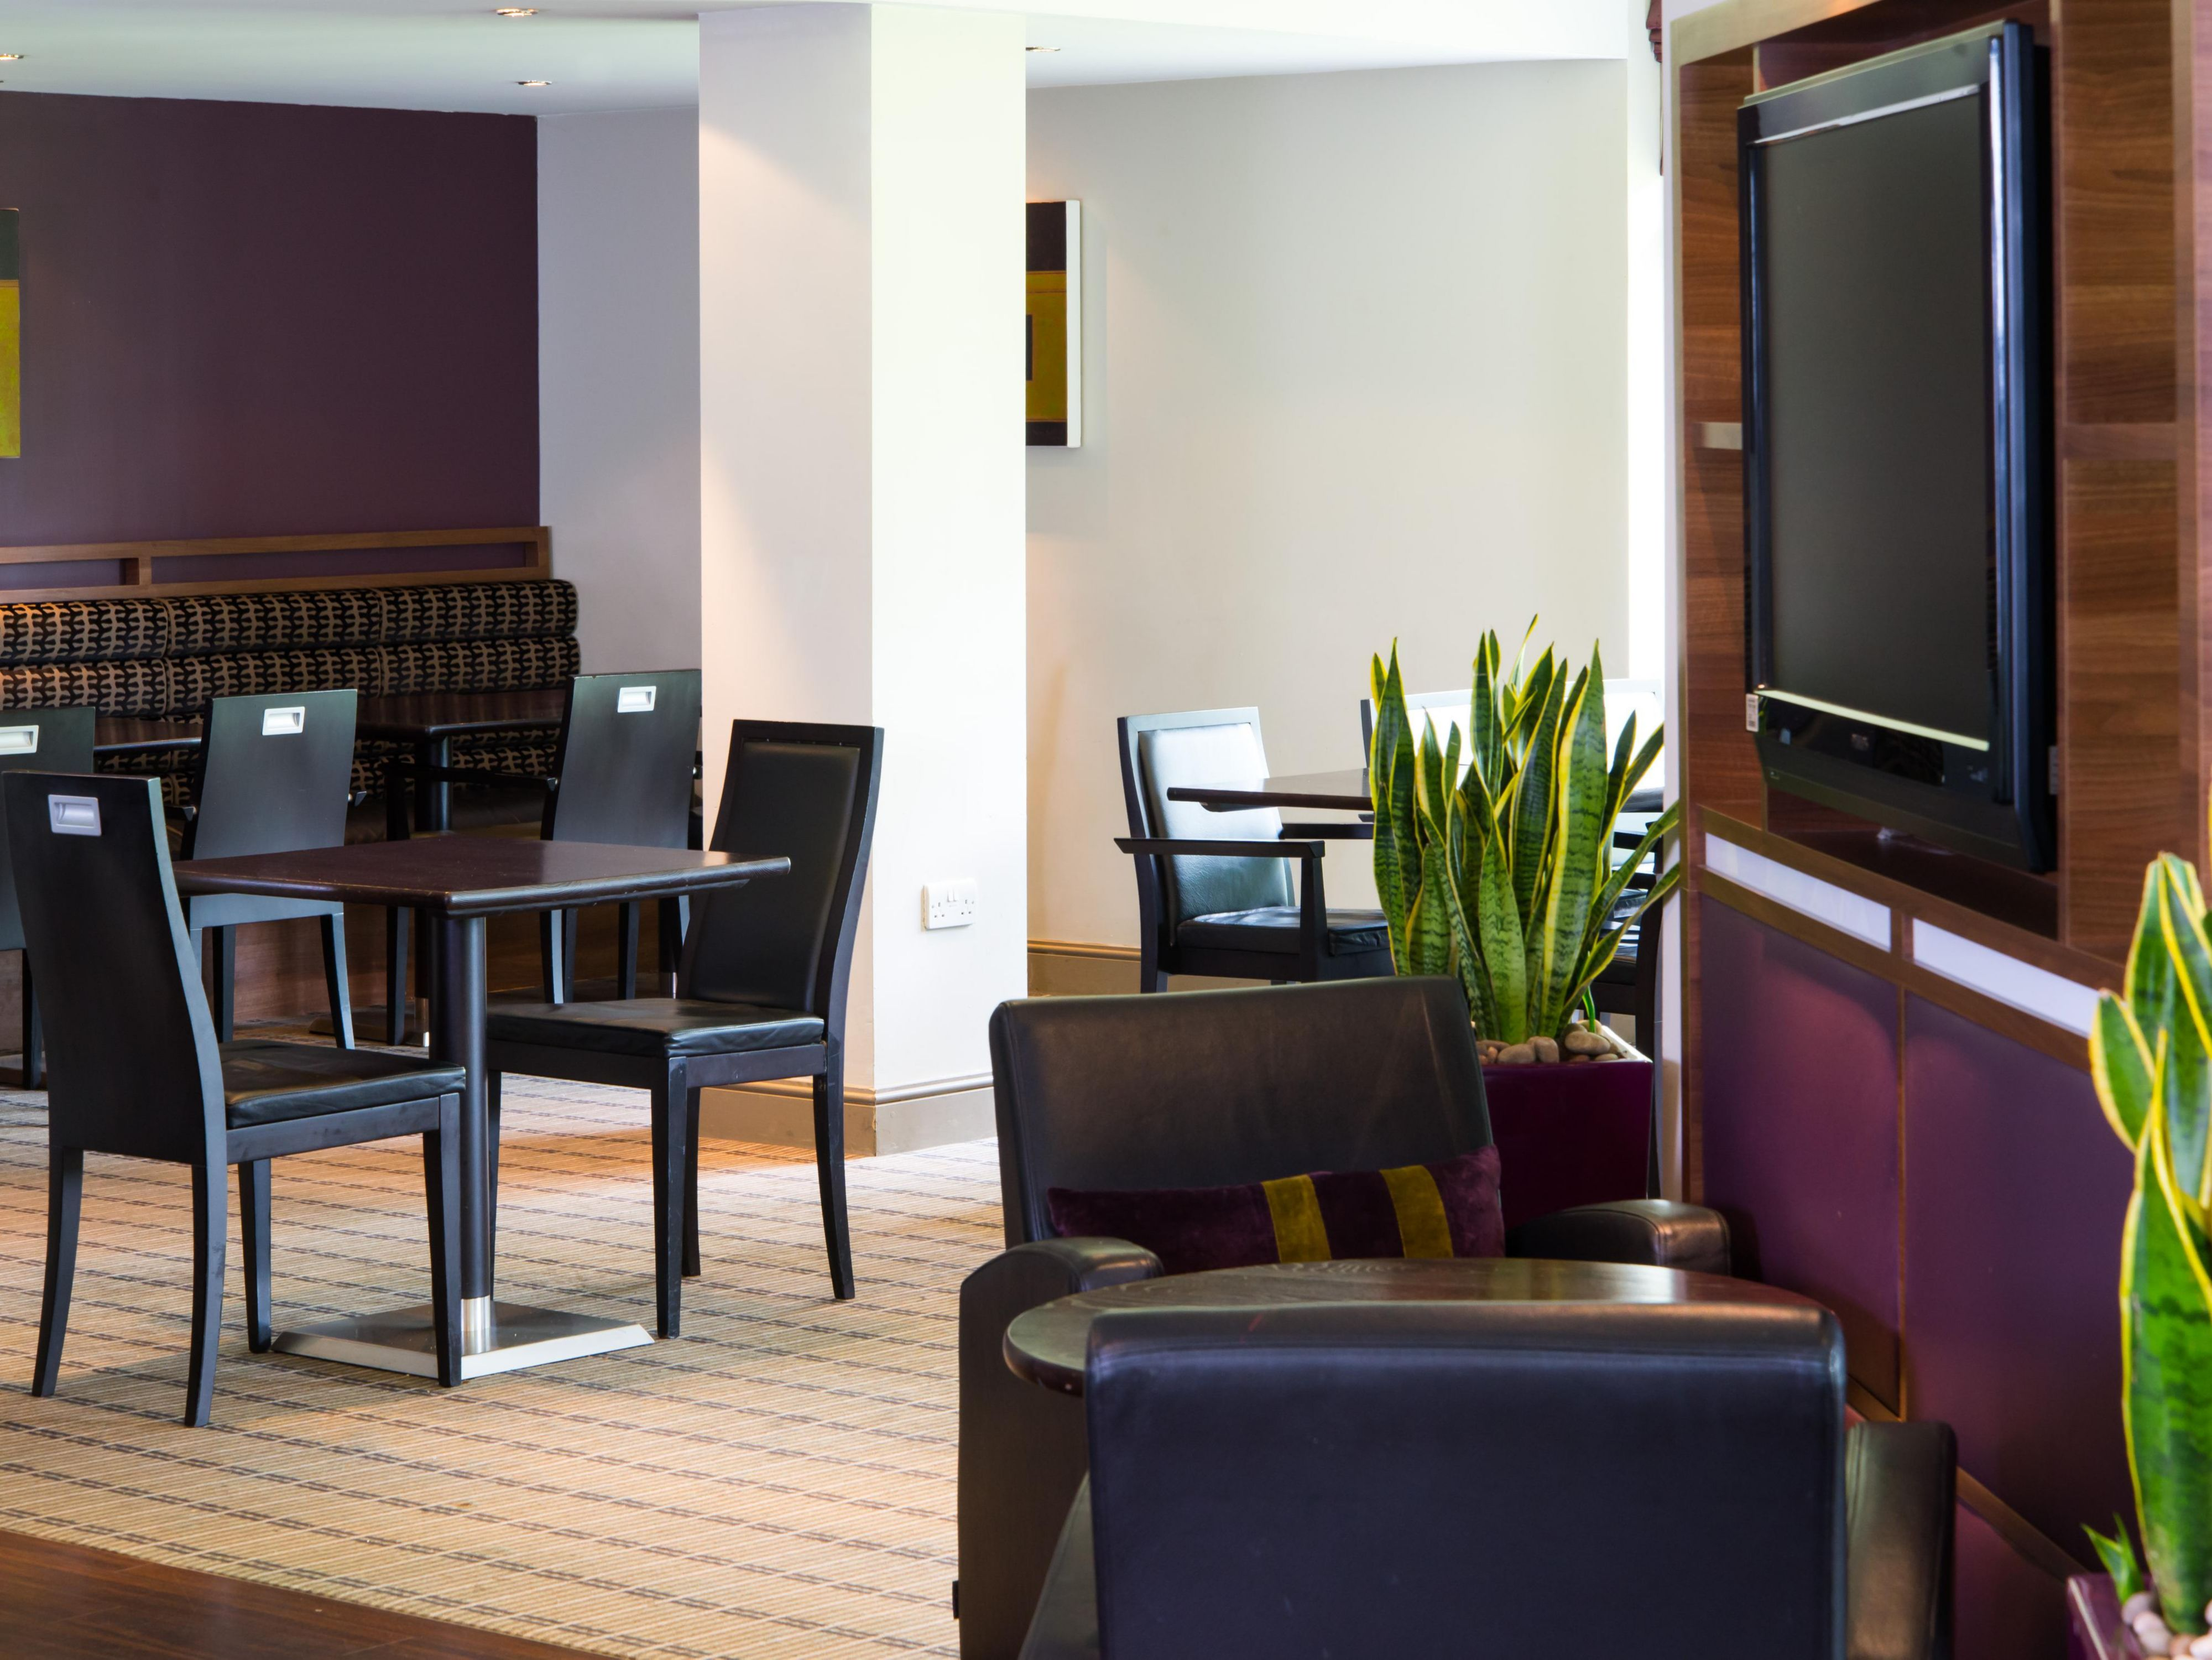 Catch up with the latest news on our flatscreen TVs in our lounge